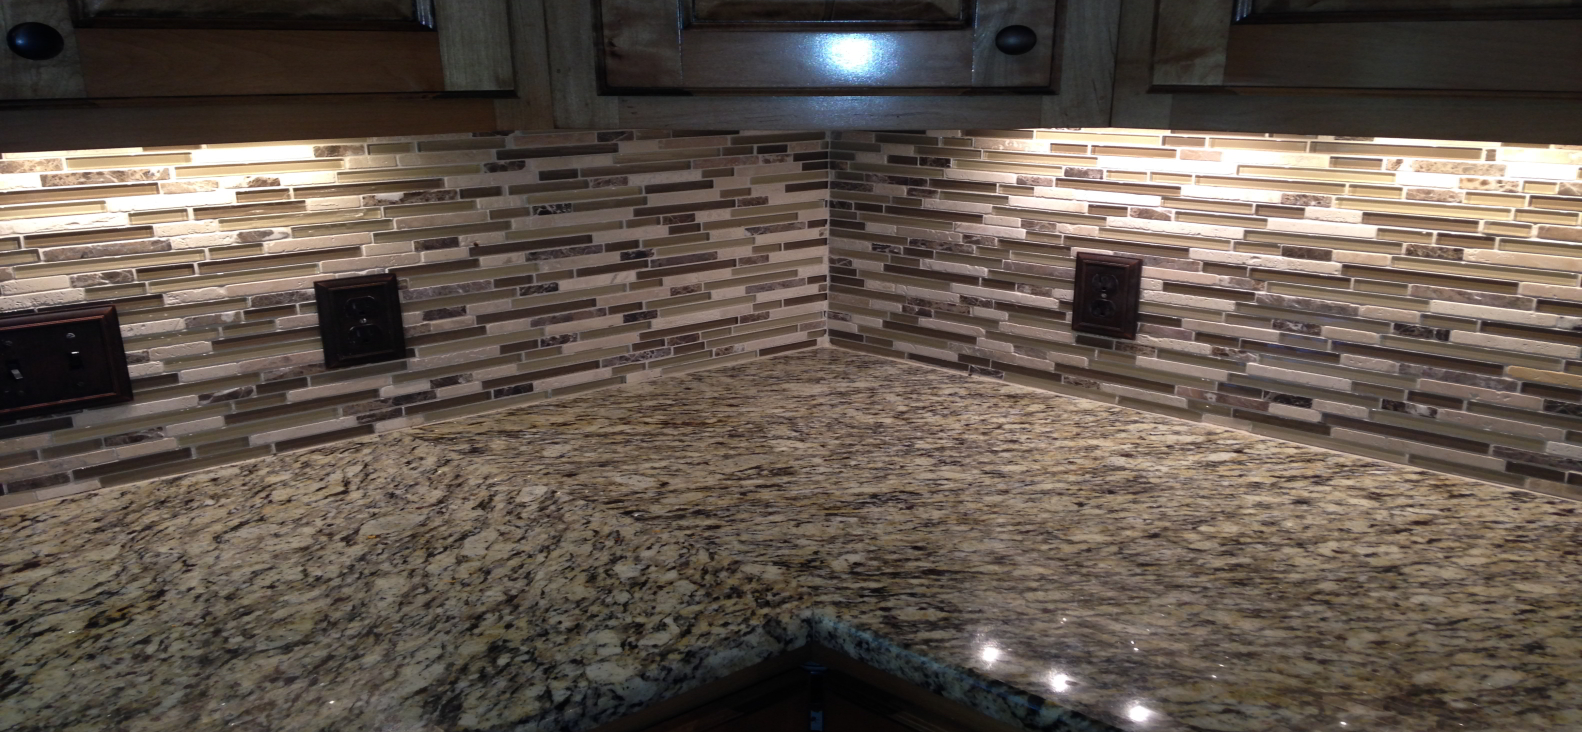 kitchen remodel kitchen remodeling companies We make kitchen remodeling and renovation services affordable and convenient for Cullman Alabama businesses and residents Bill Hendrix Construction Company